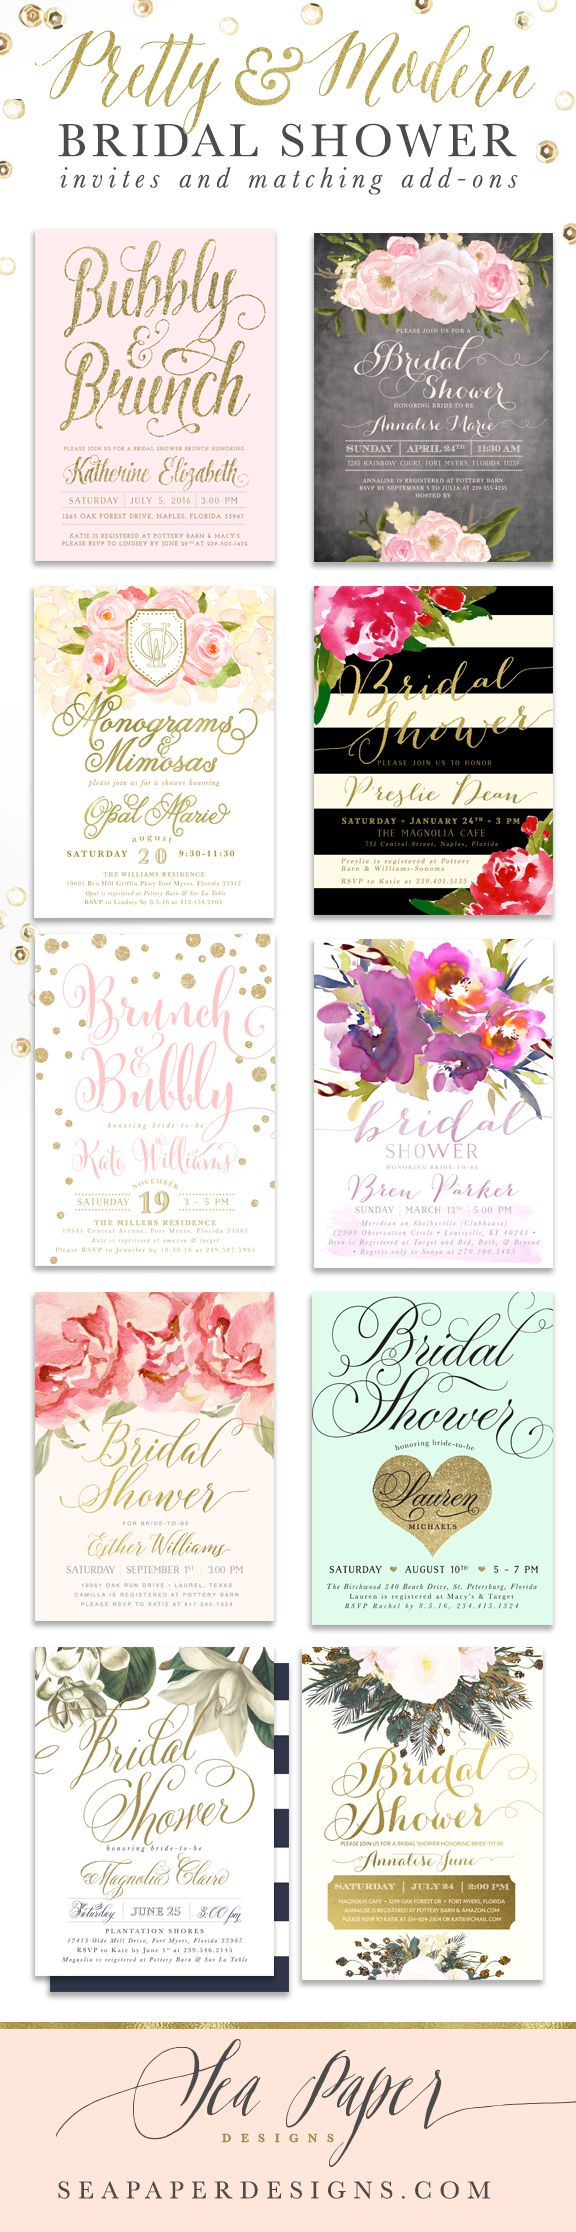 80 Best Bridal Shower Invitations Images On Pinterest Bachelorette